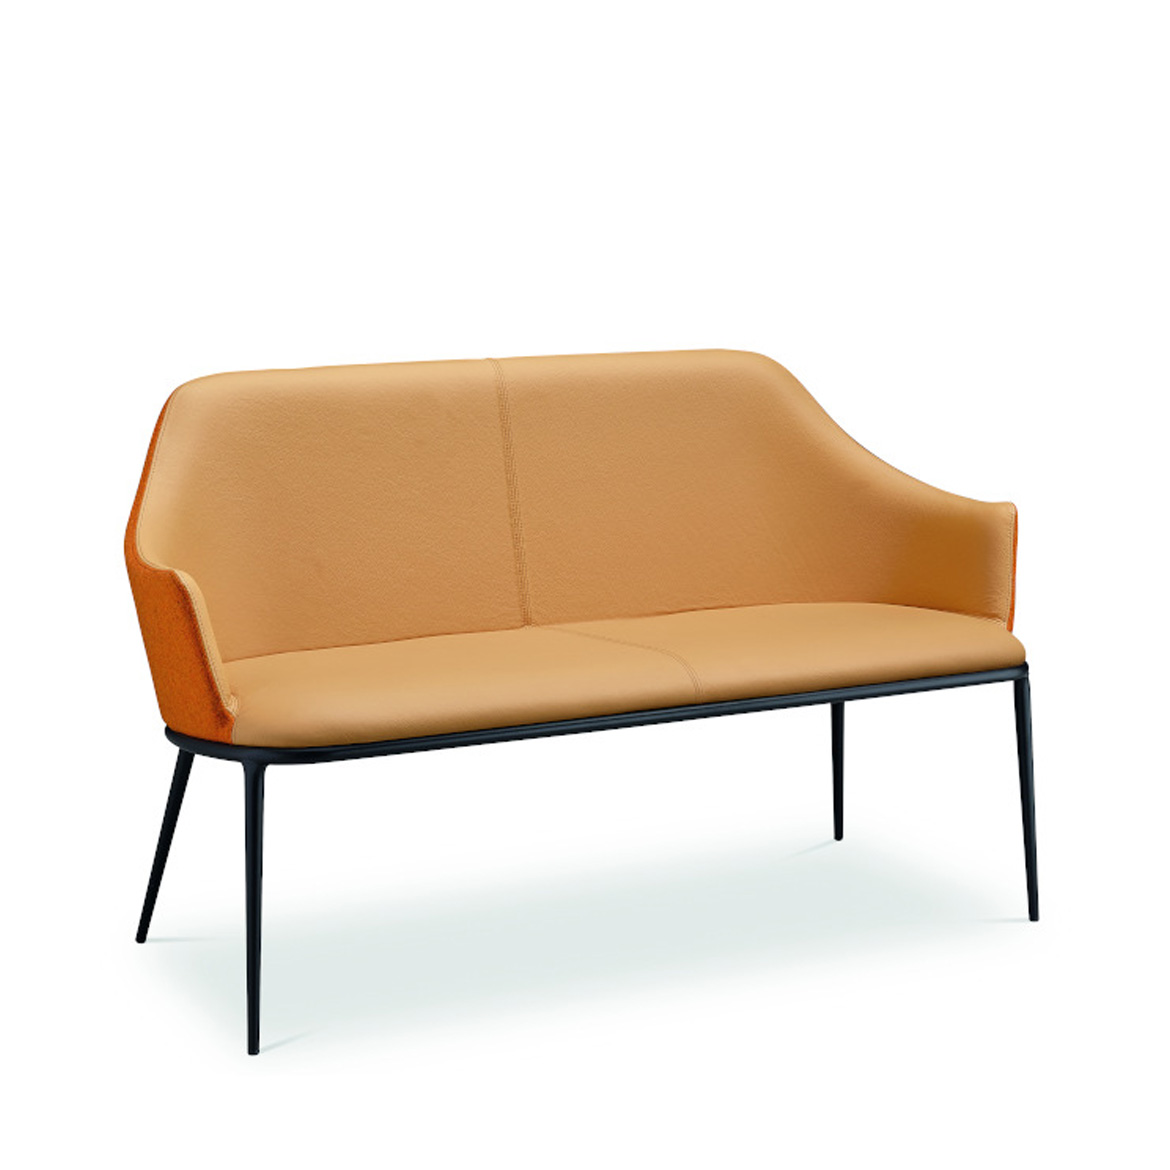 Two seats sofa with four-legd steel base in lacquered steel. Seat and back upholstered in fabric, faux leather or leather. Seat and back can be configured in different colors and materials.